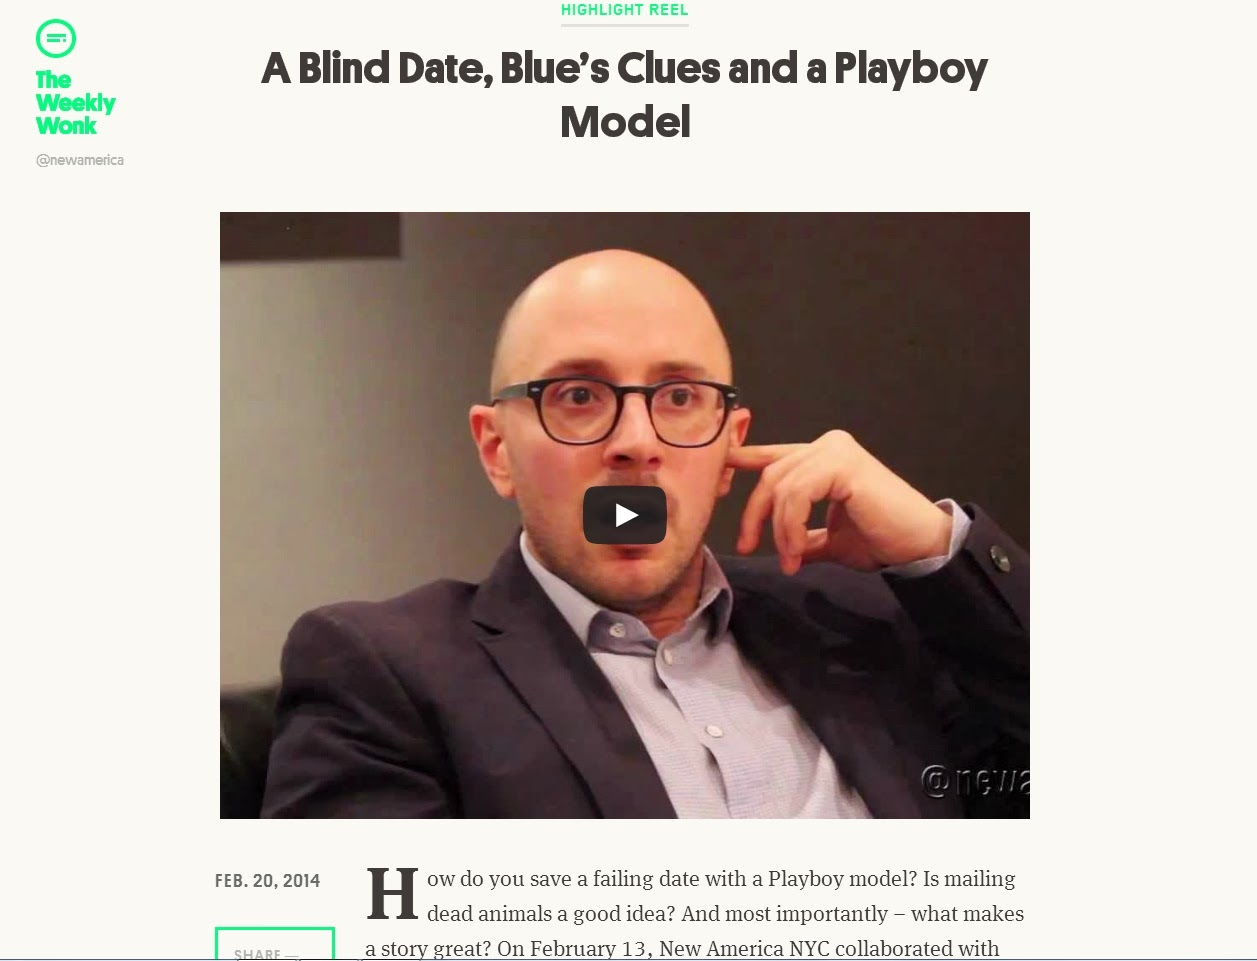 http://weeklywonk.newamerica.net/articles/a-blind-date-blues-clues-and-a-playboy-model/